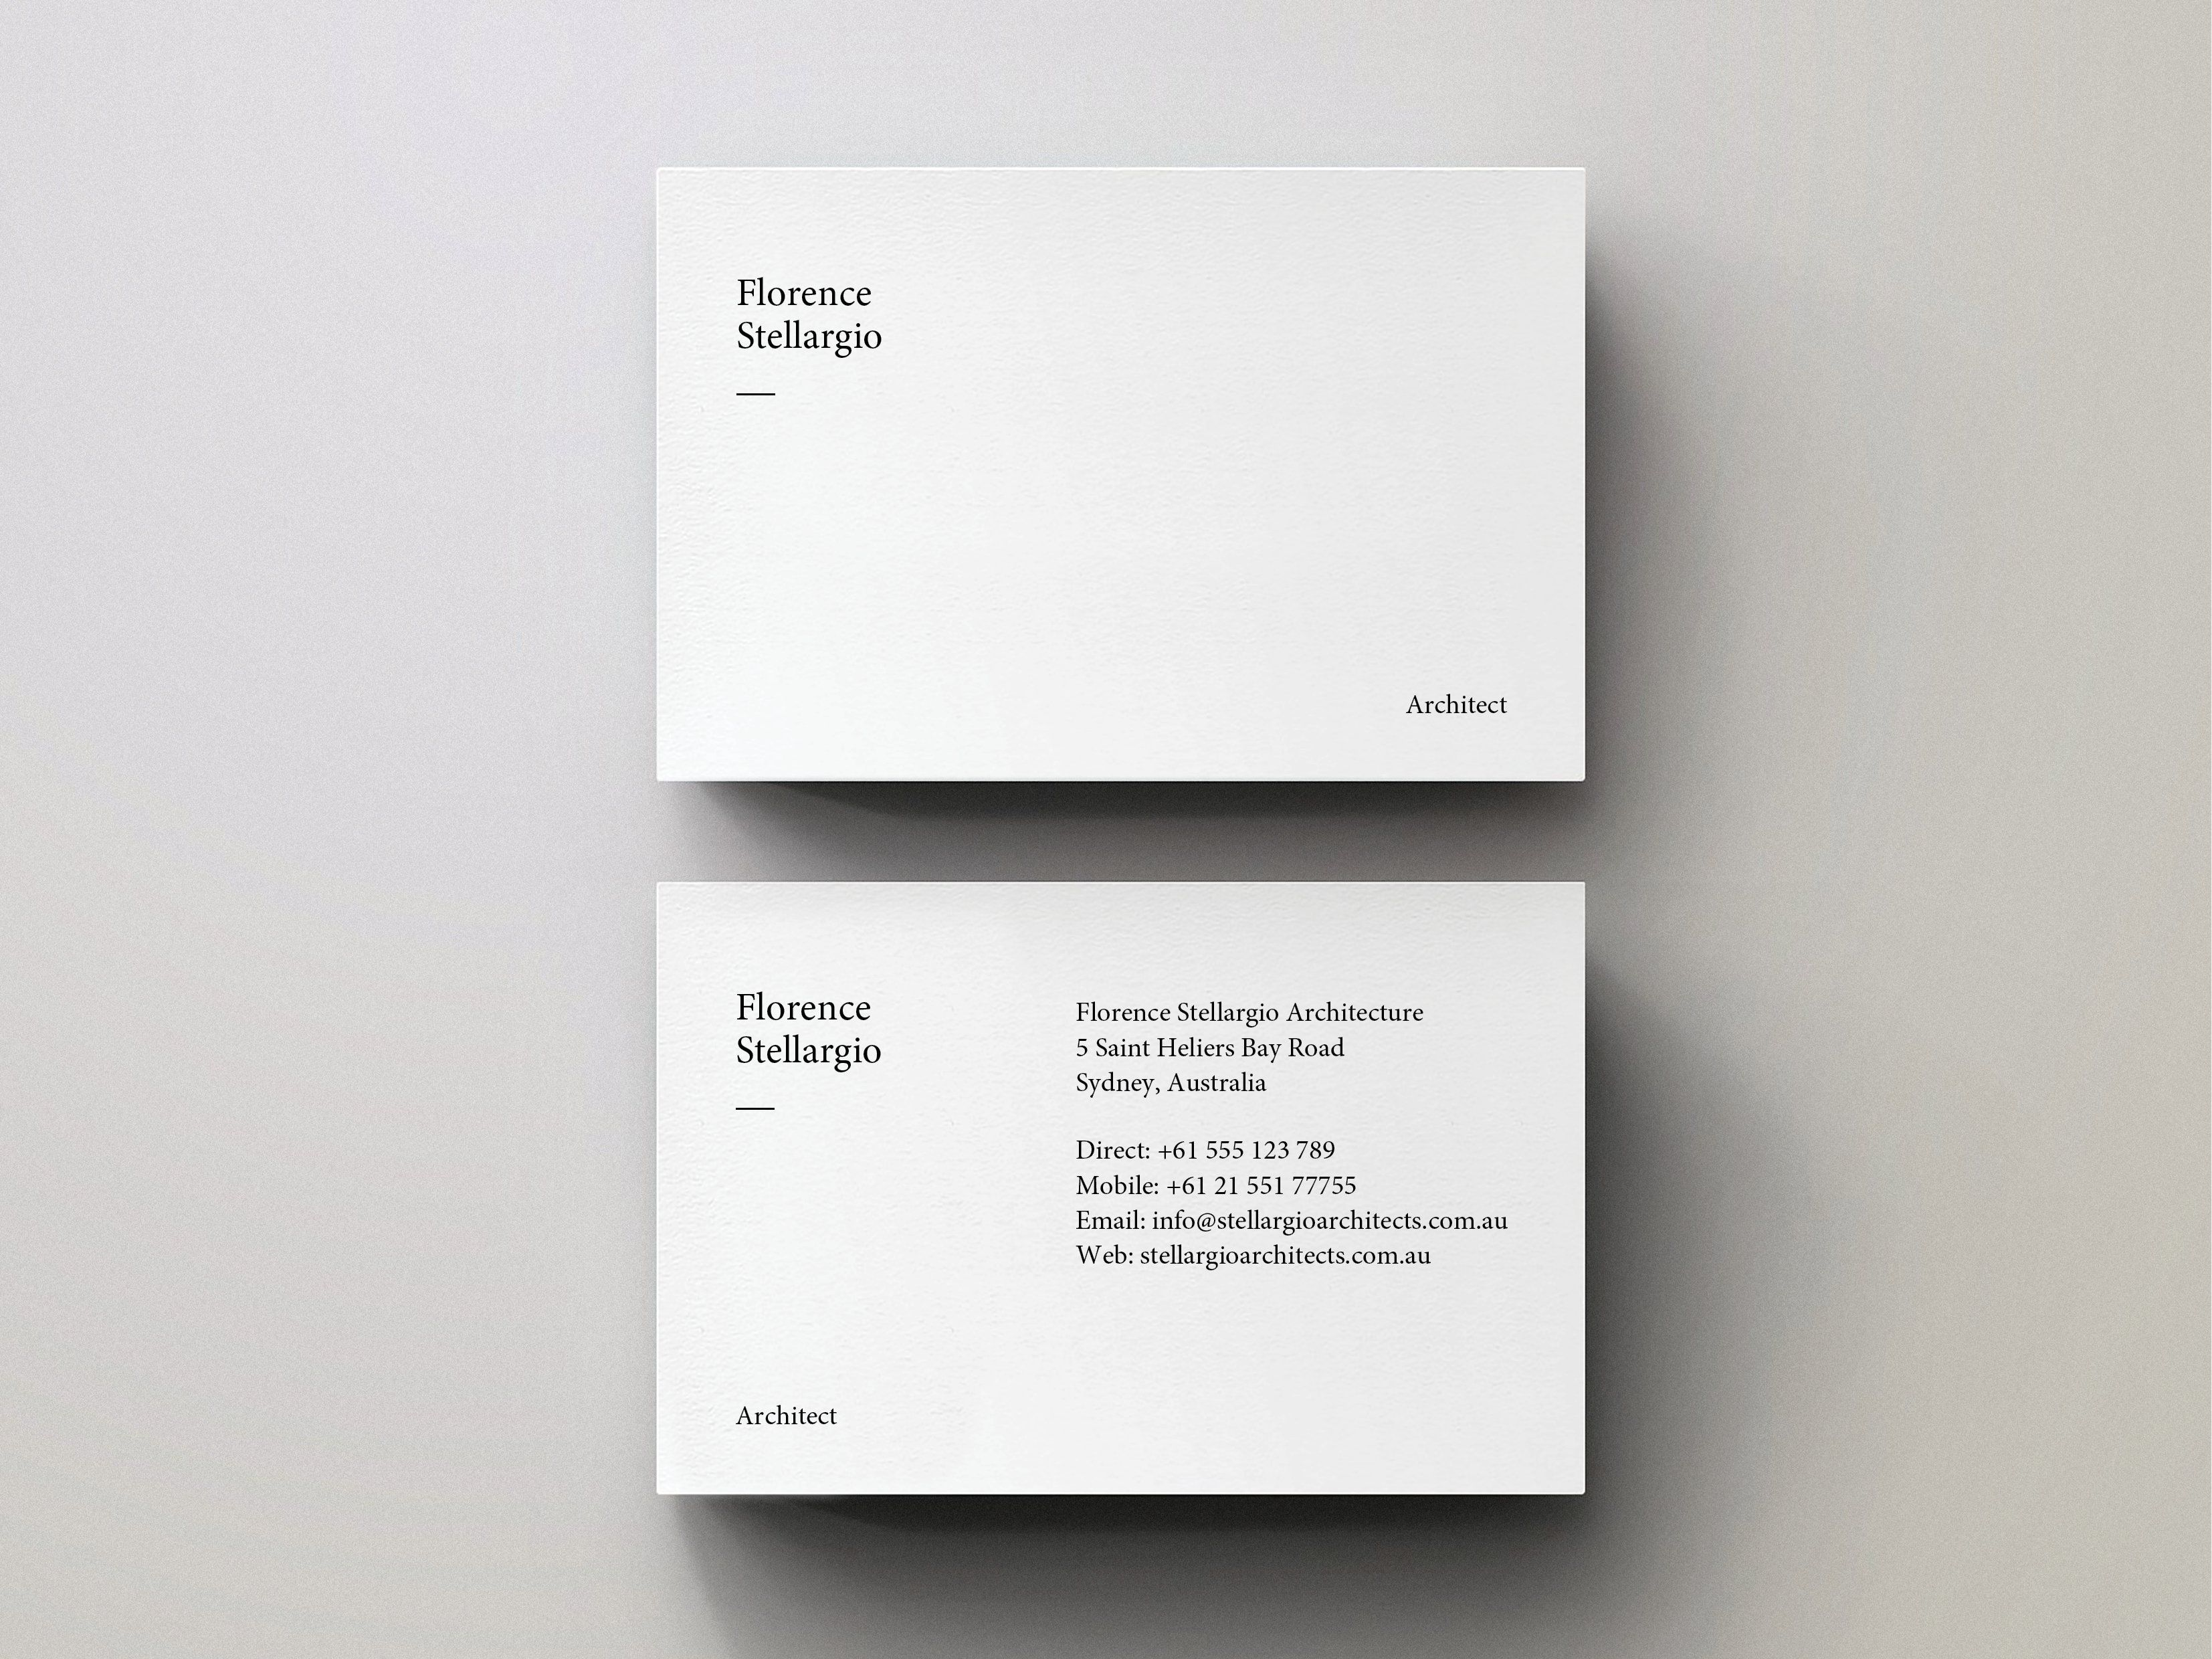 Template Business Cards from i.pinimg.com